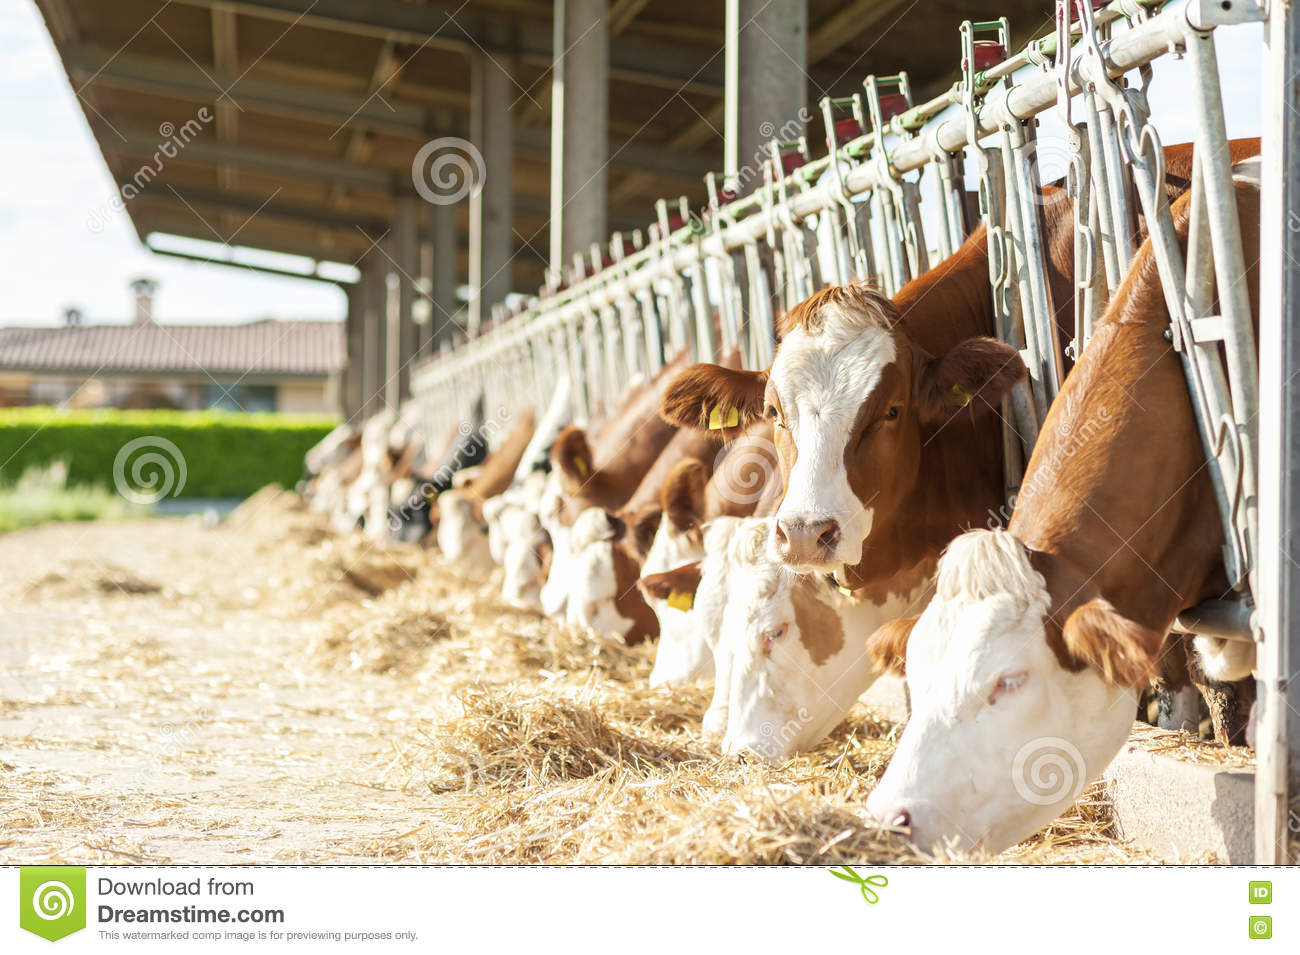 Vaches mangeant le foin dans l 39 table image stock image for Etable entravee vache